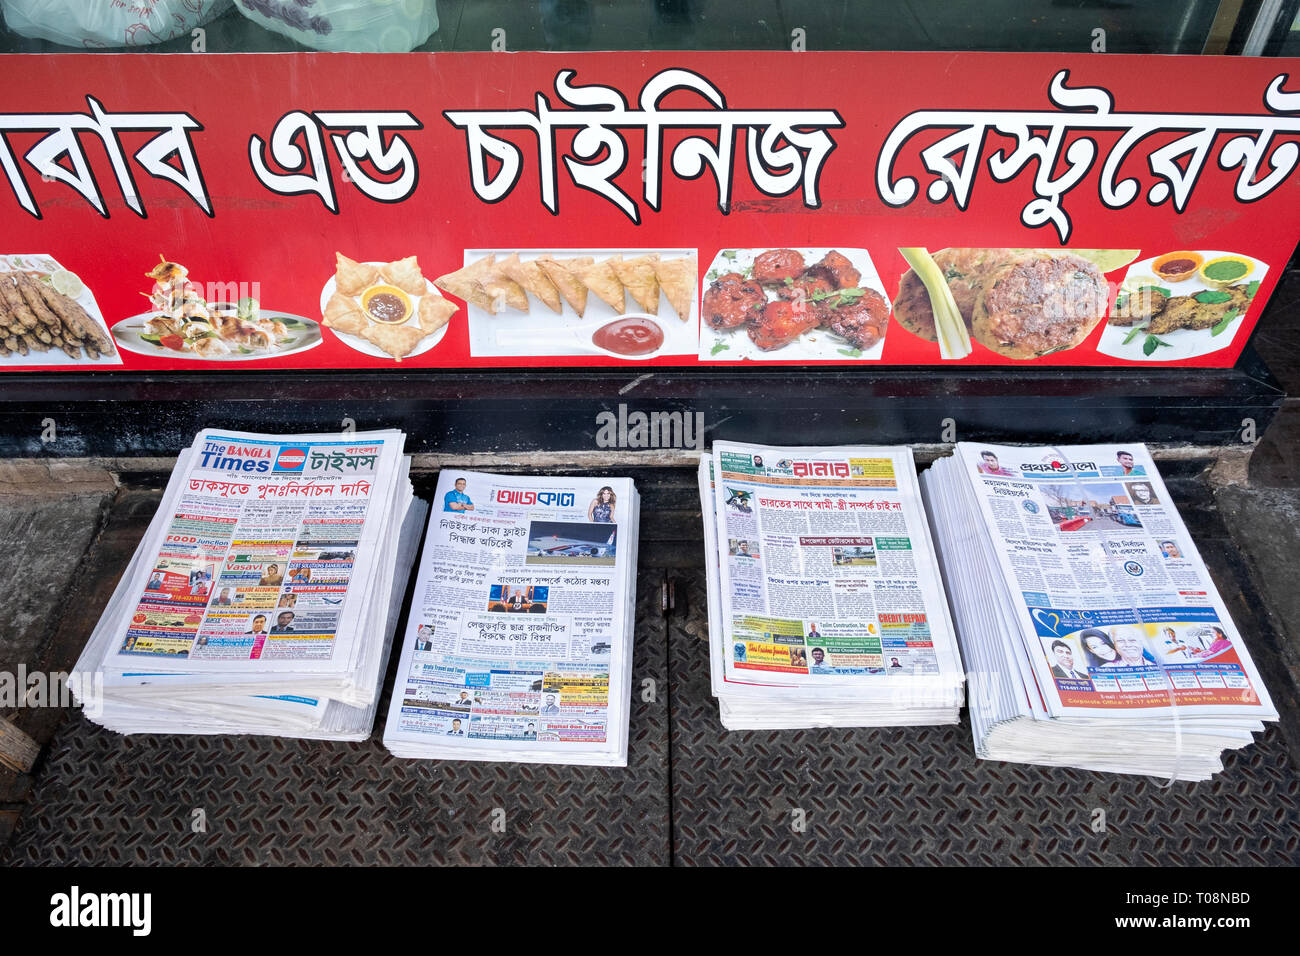 Piles of free Begali newspapers piled up outside a Bangladesh restaurant on 74th Street in Jackson Heights, Queens, New York City - Stock Image